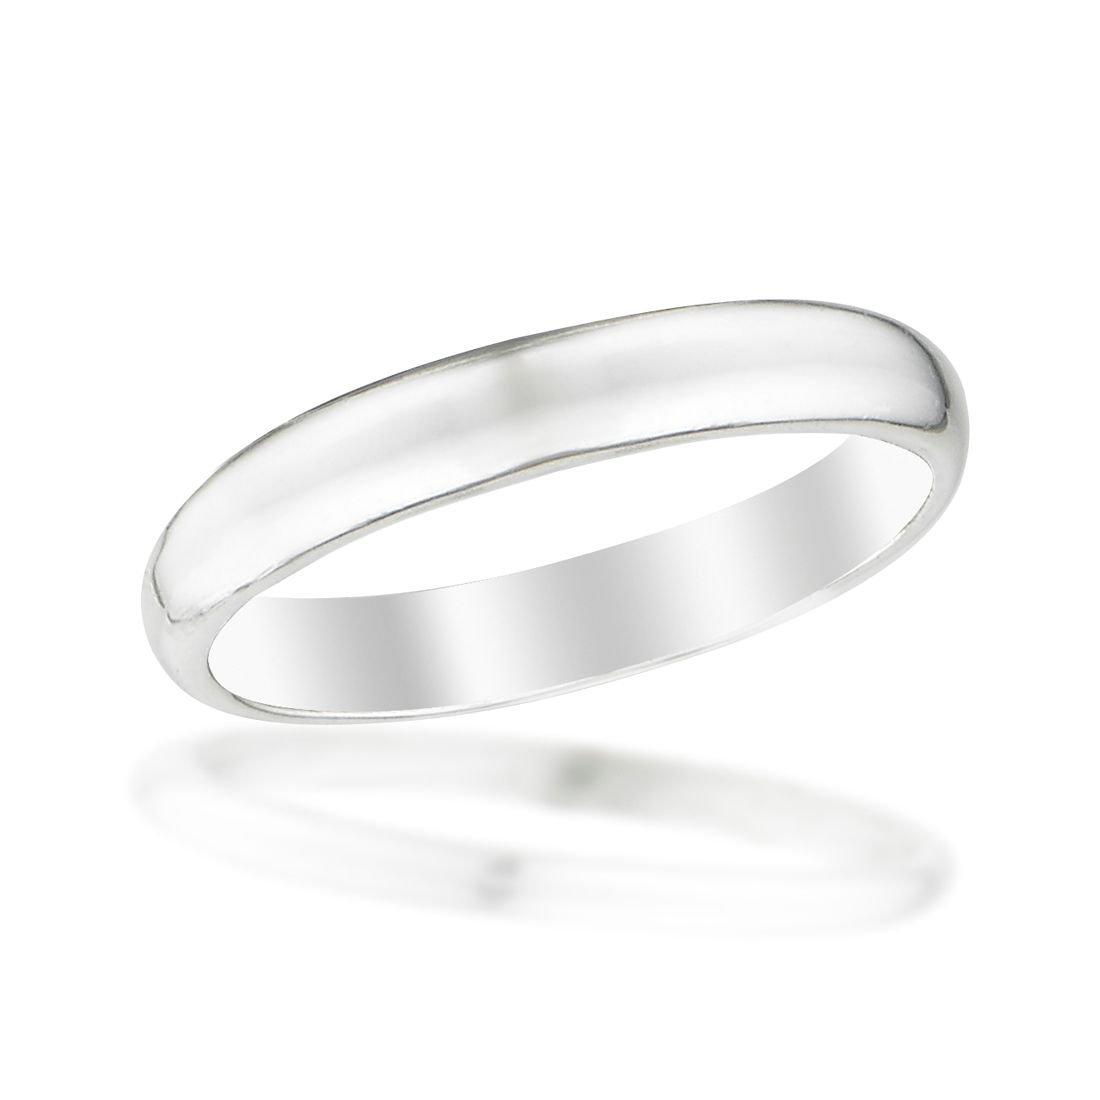 Beloved Child Goods Sterling Silver Baby Ring, 2mm domed band in a size 1 for 3-18 months, beautifully gift packaged by makes an Ideal Baby Shower, Baptism or Christening, New Baby or Christmas gift.